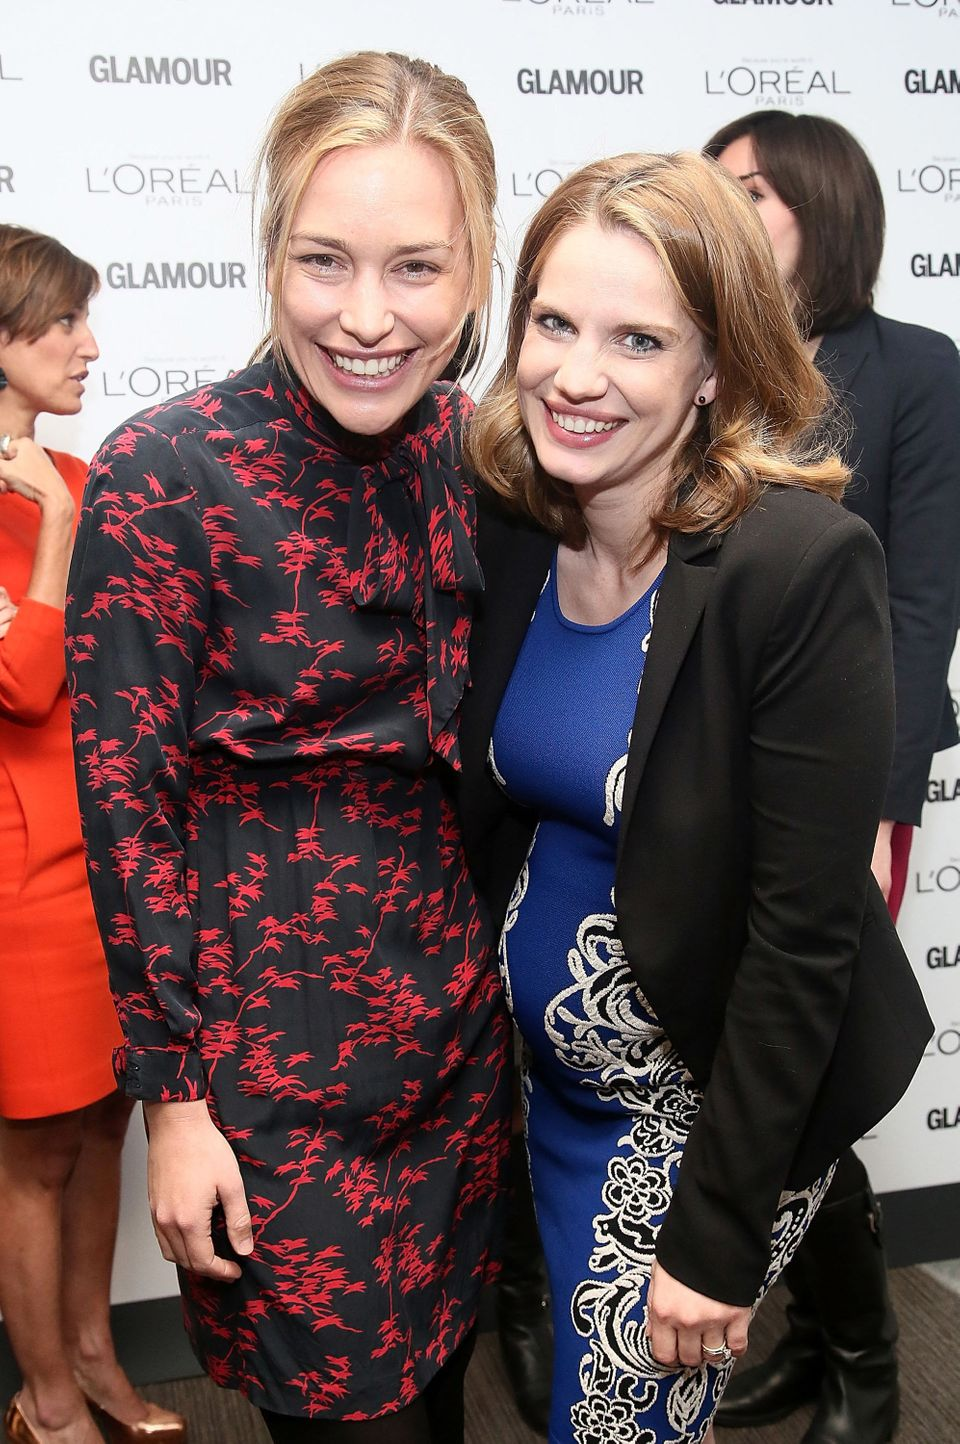 NEW YORK, NY - APRIL 03:  (L-R)  Piper Perabo and Anna Chlumsky  attend the Glamour And L'Oreal Paris Celebration for the Top